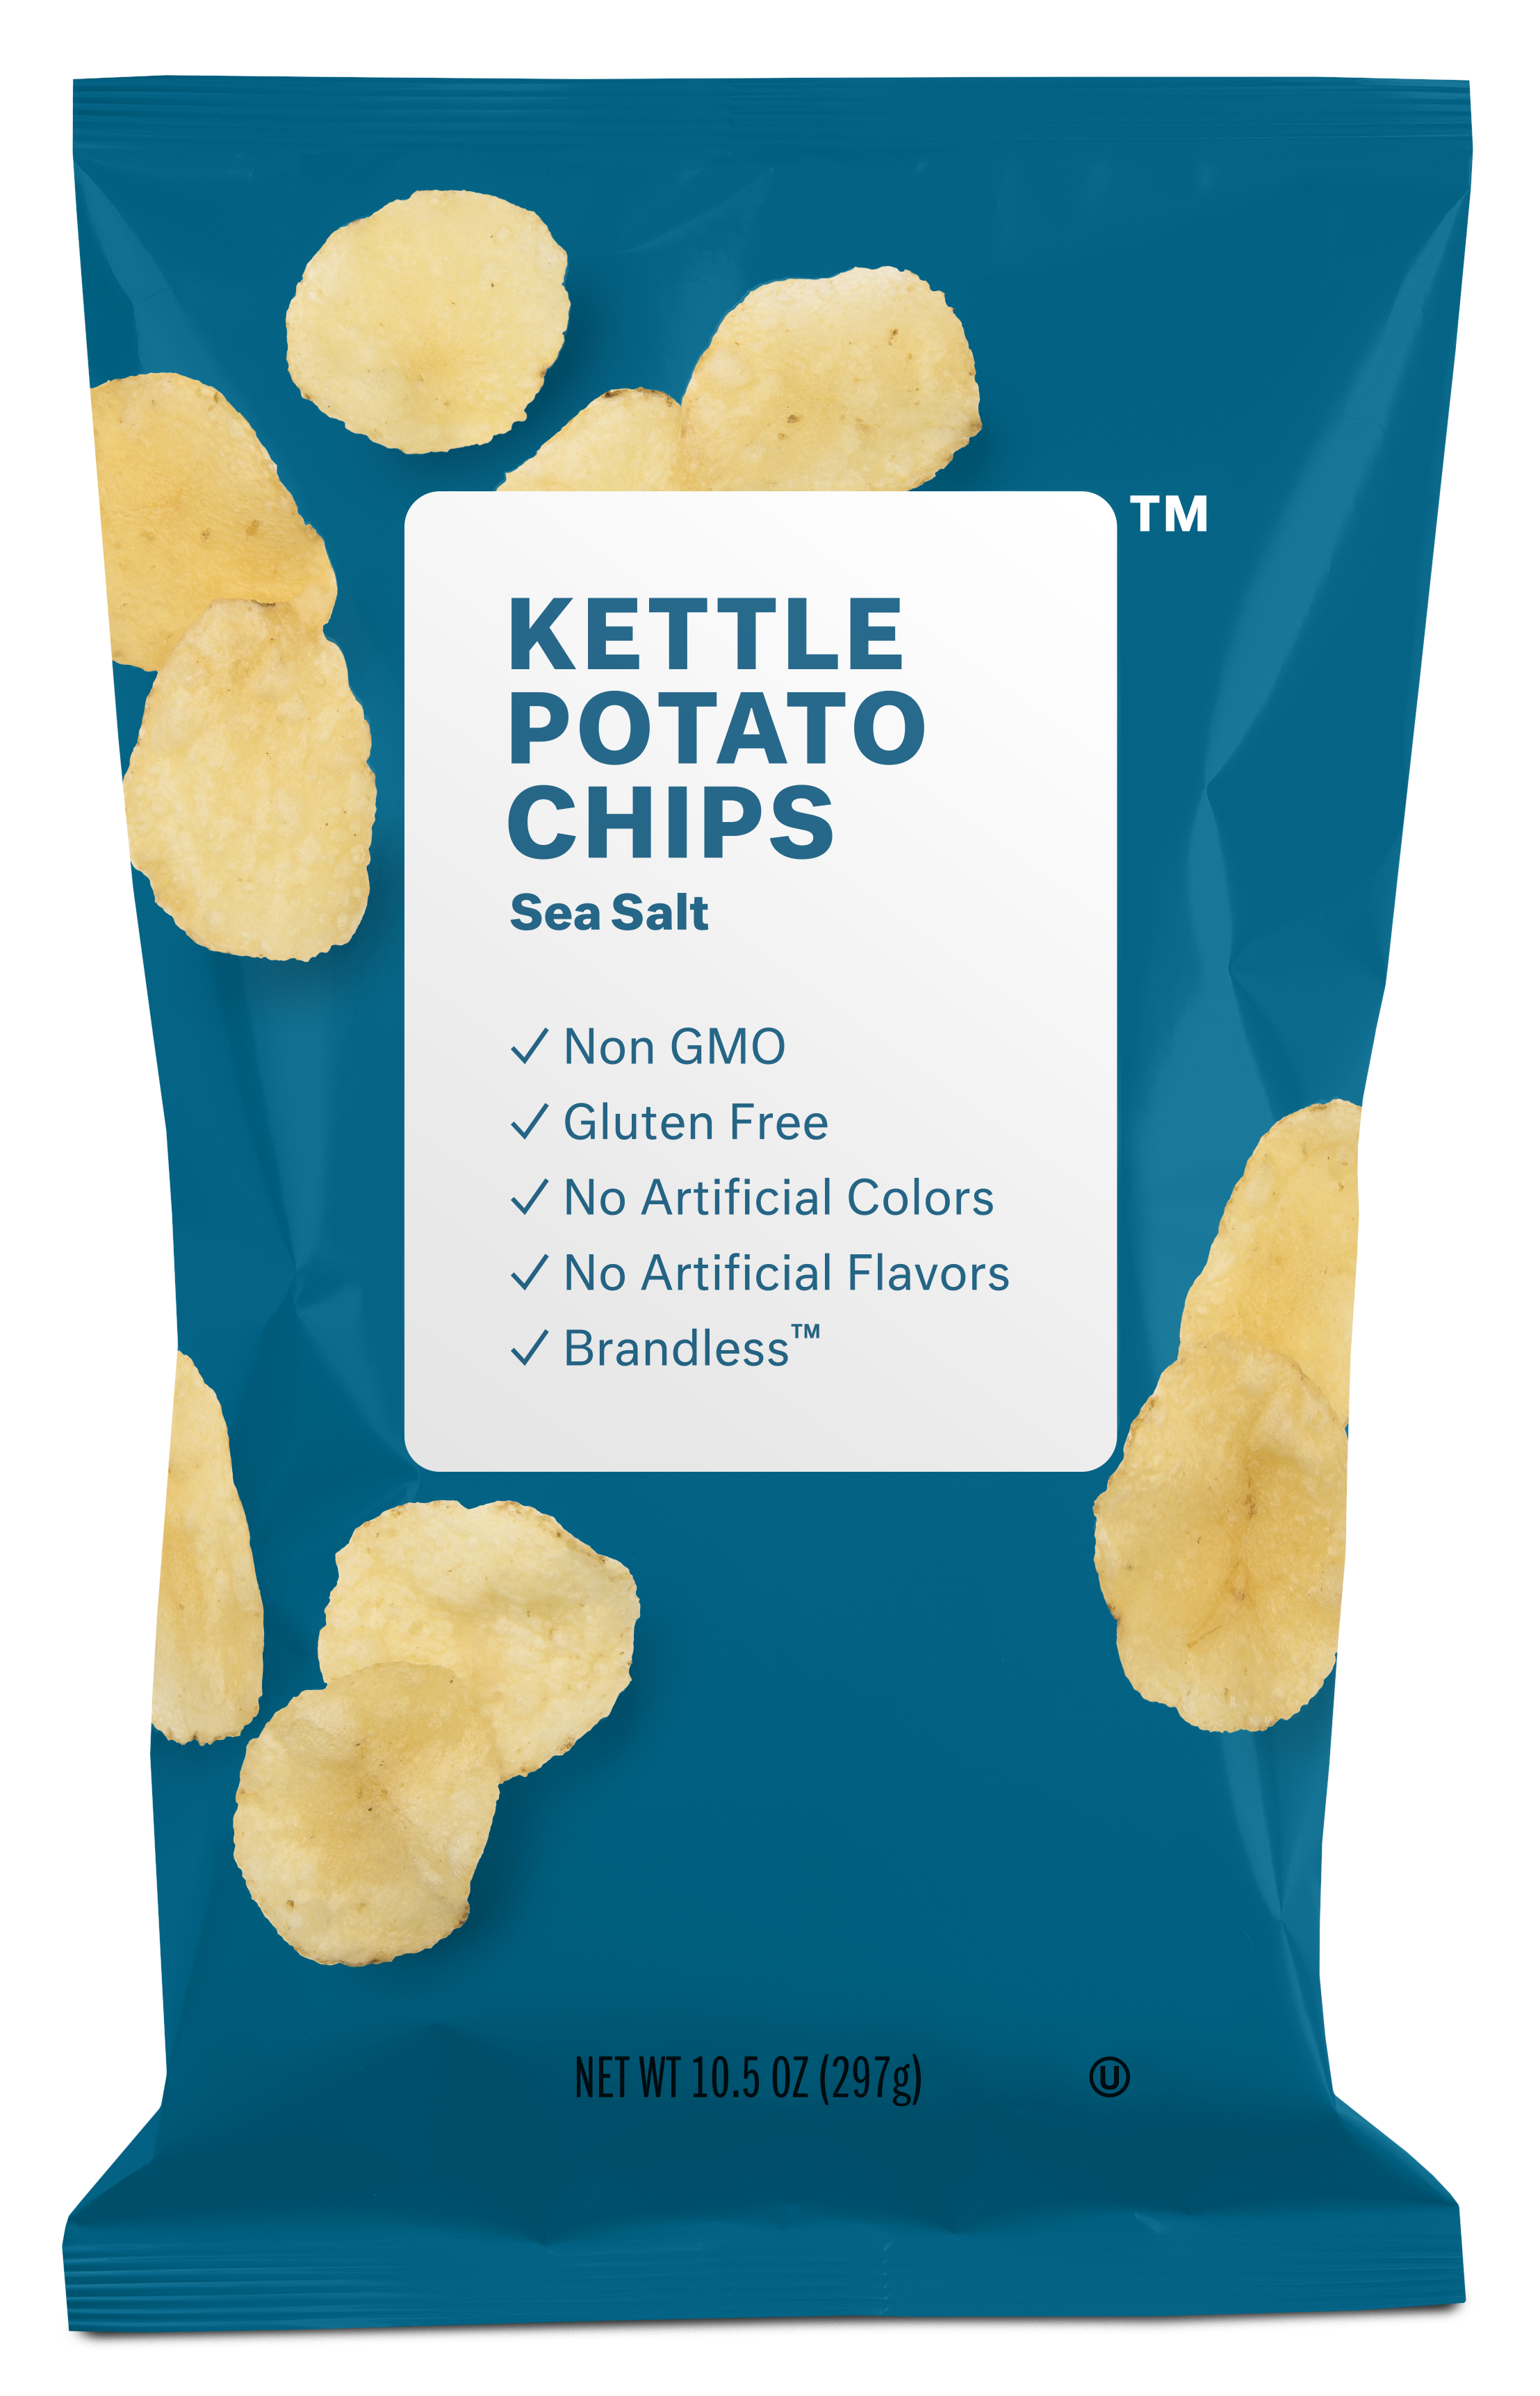 Brandless Kettle Potato Chips: Sea Salt